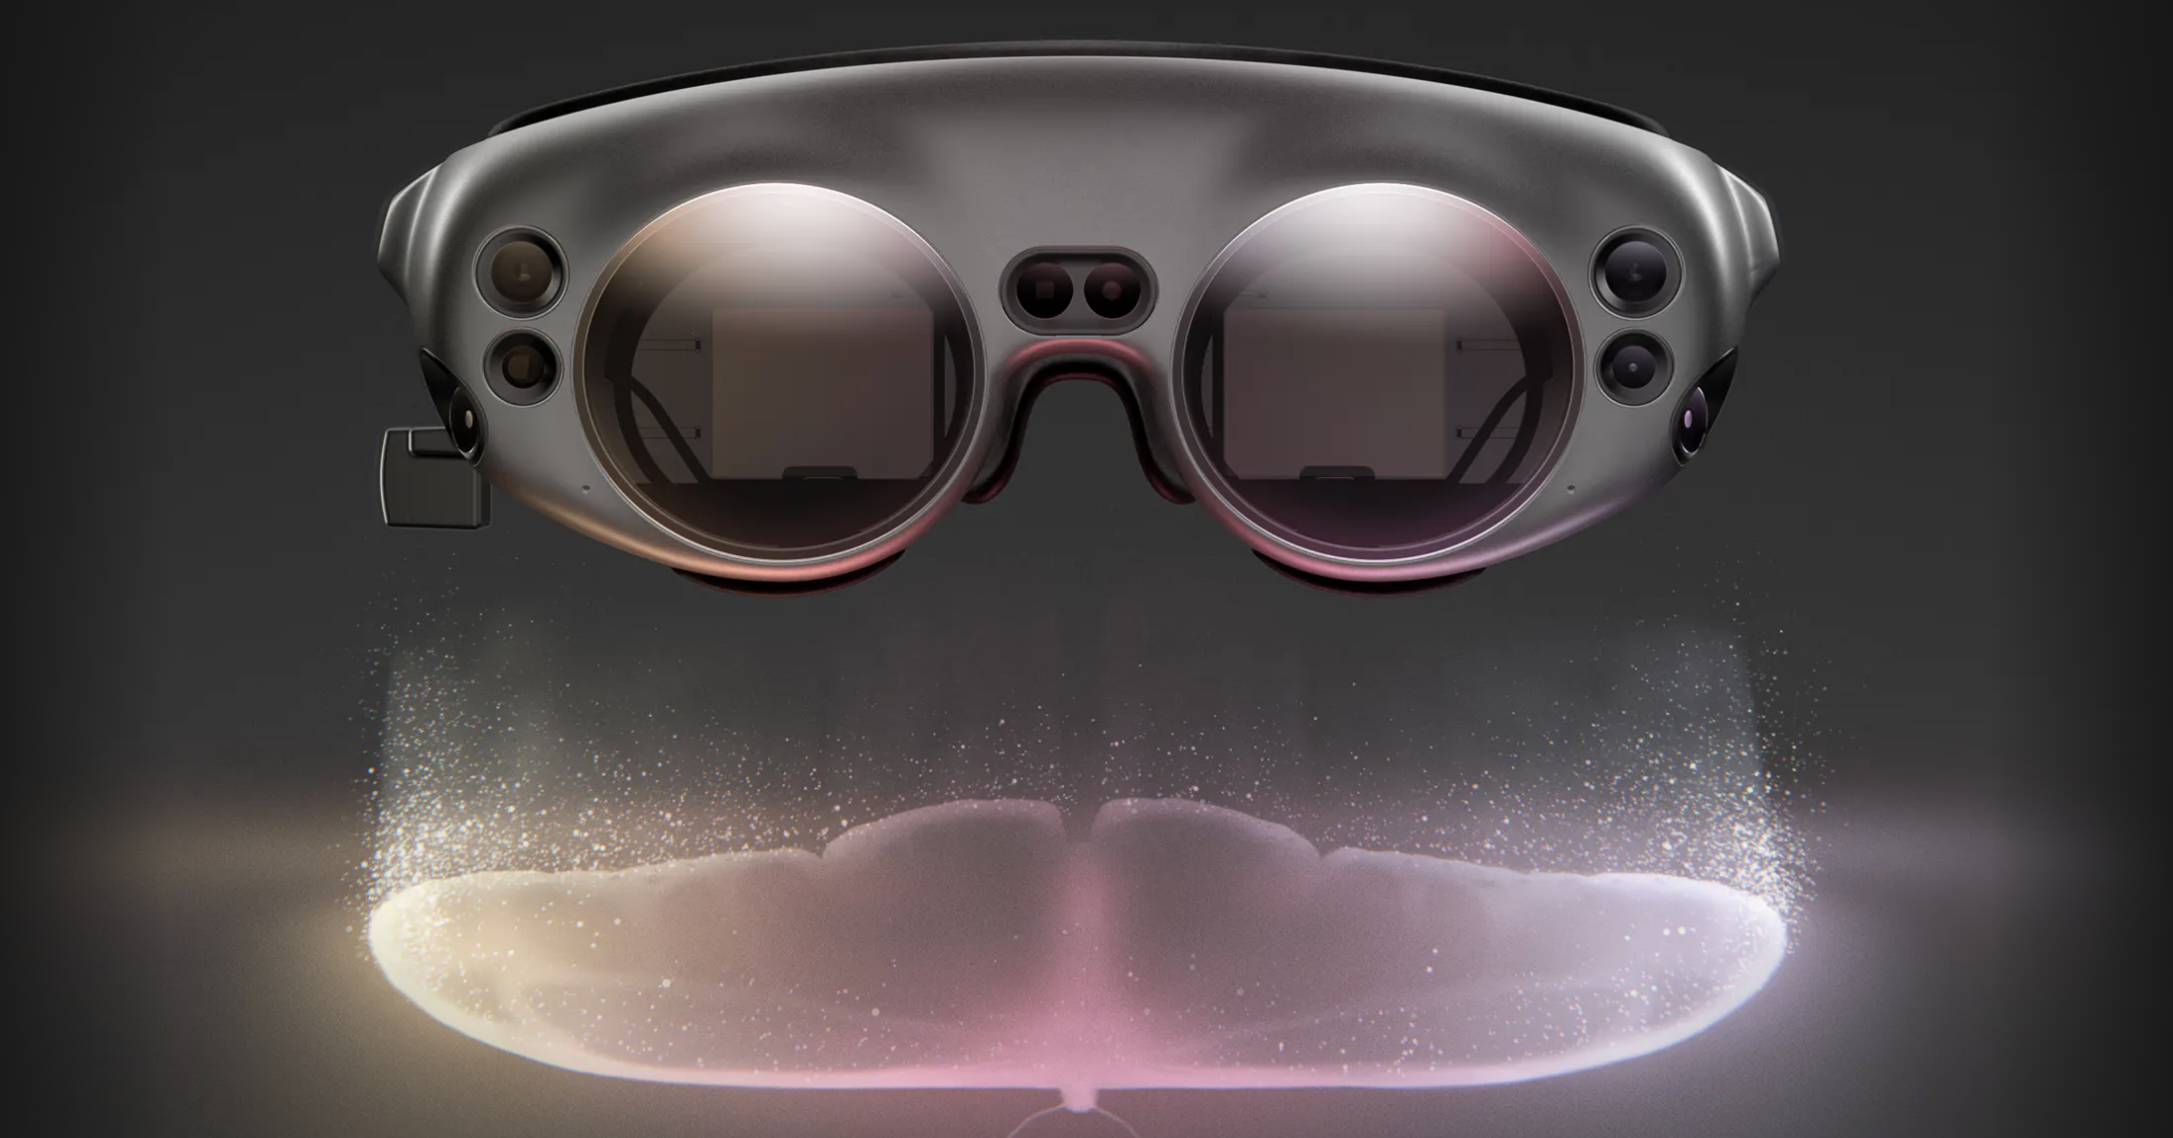 Temasek-backed AR startup Magic Leap mulls strategic options including sale